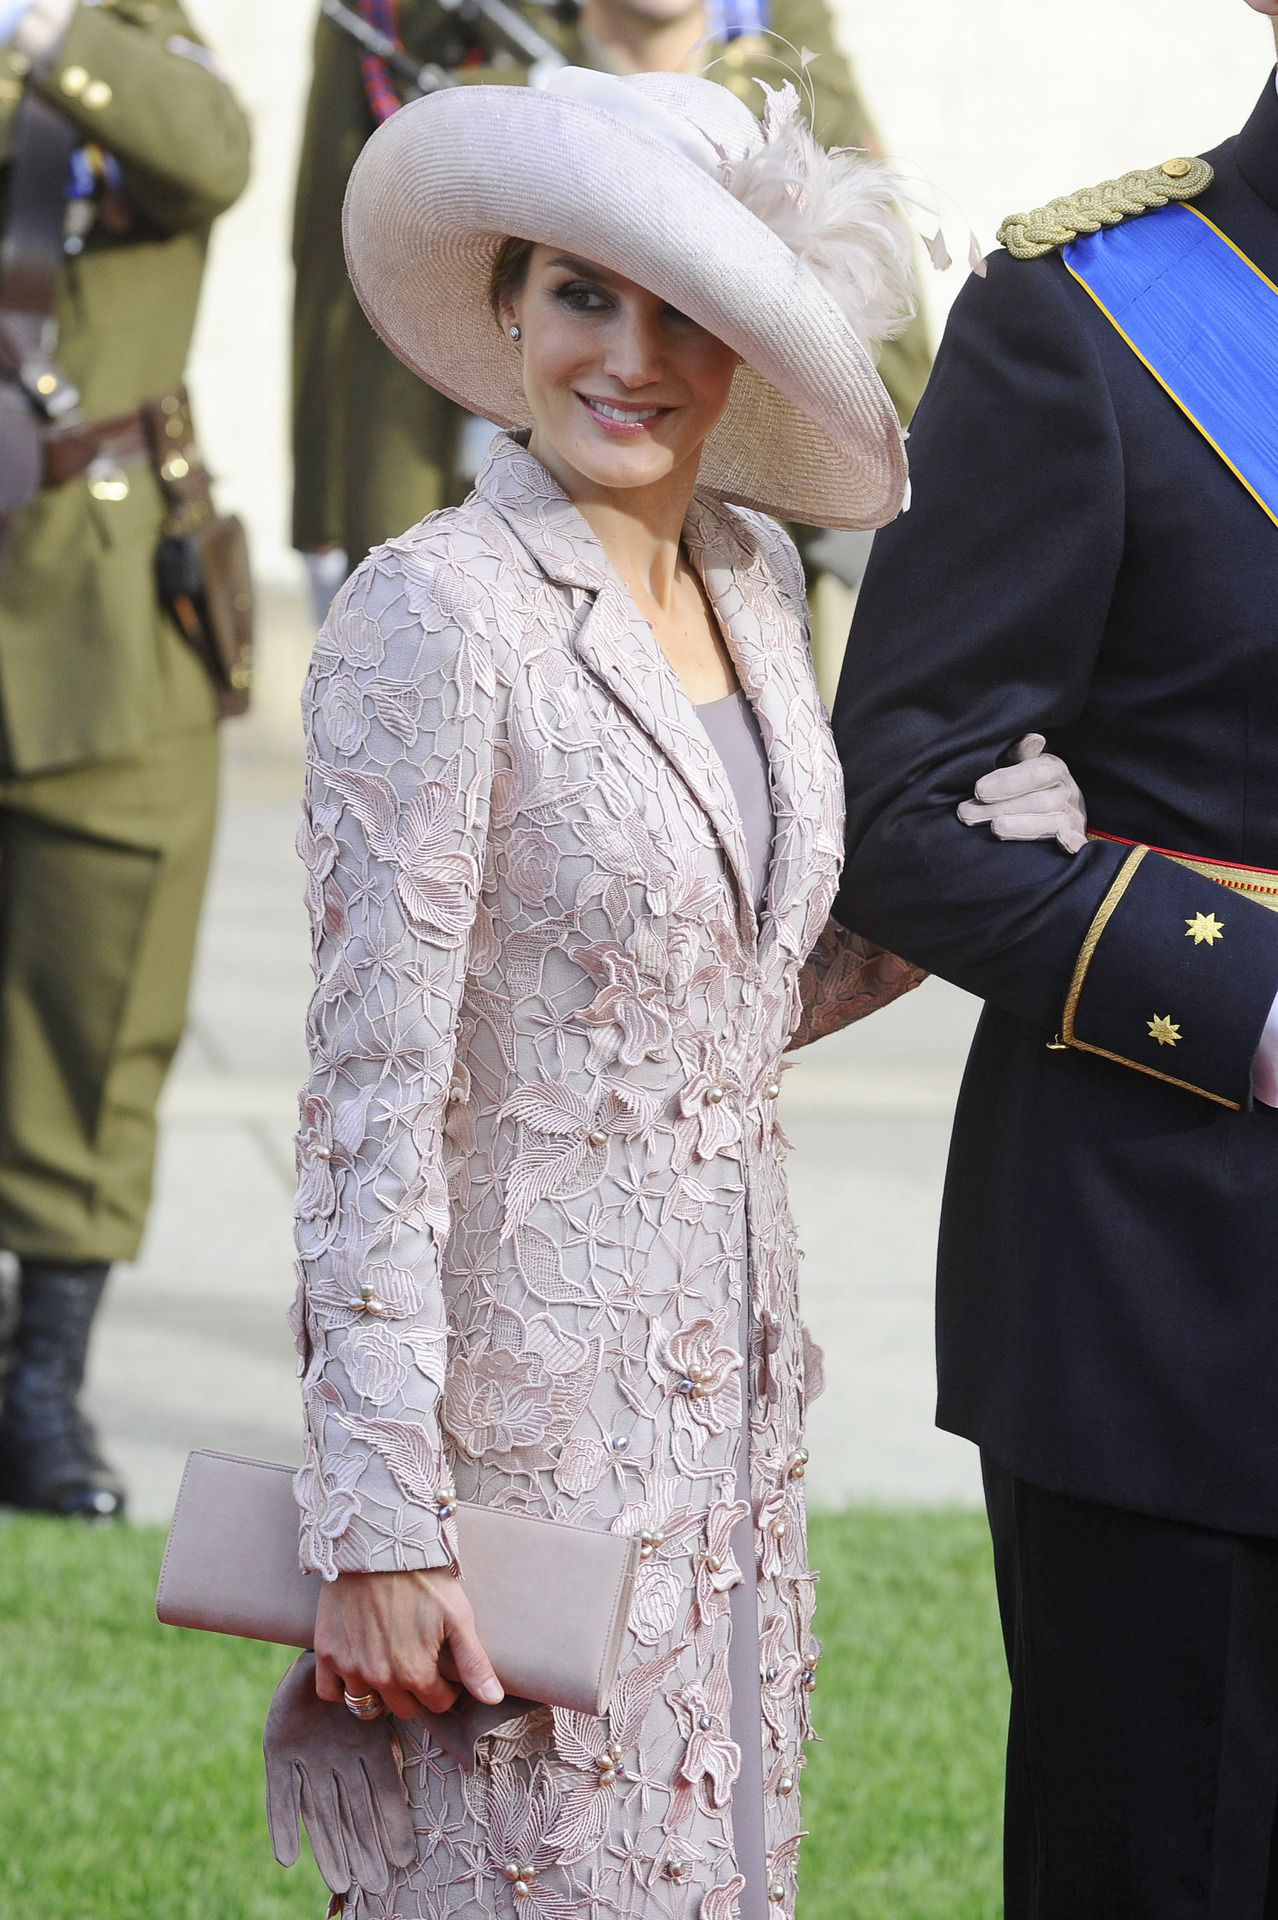 The Princess of Asturias at the wedding of the Hereditary Grand Duke of Luxembourg. October 20, 2012.